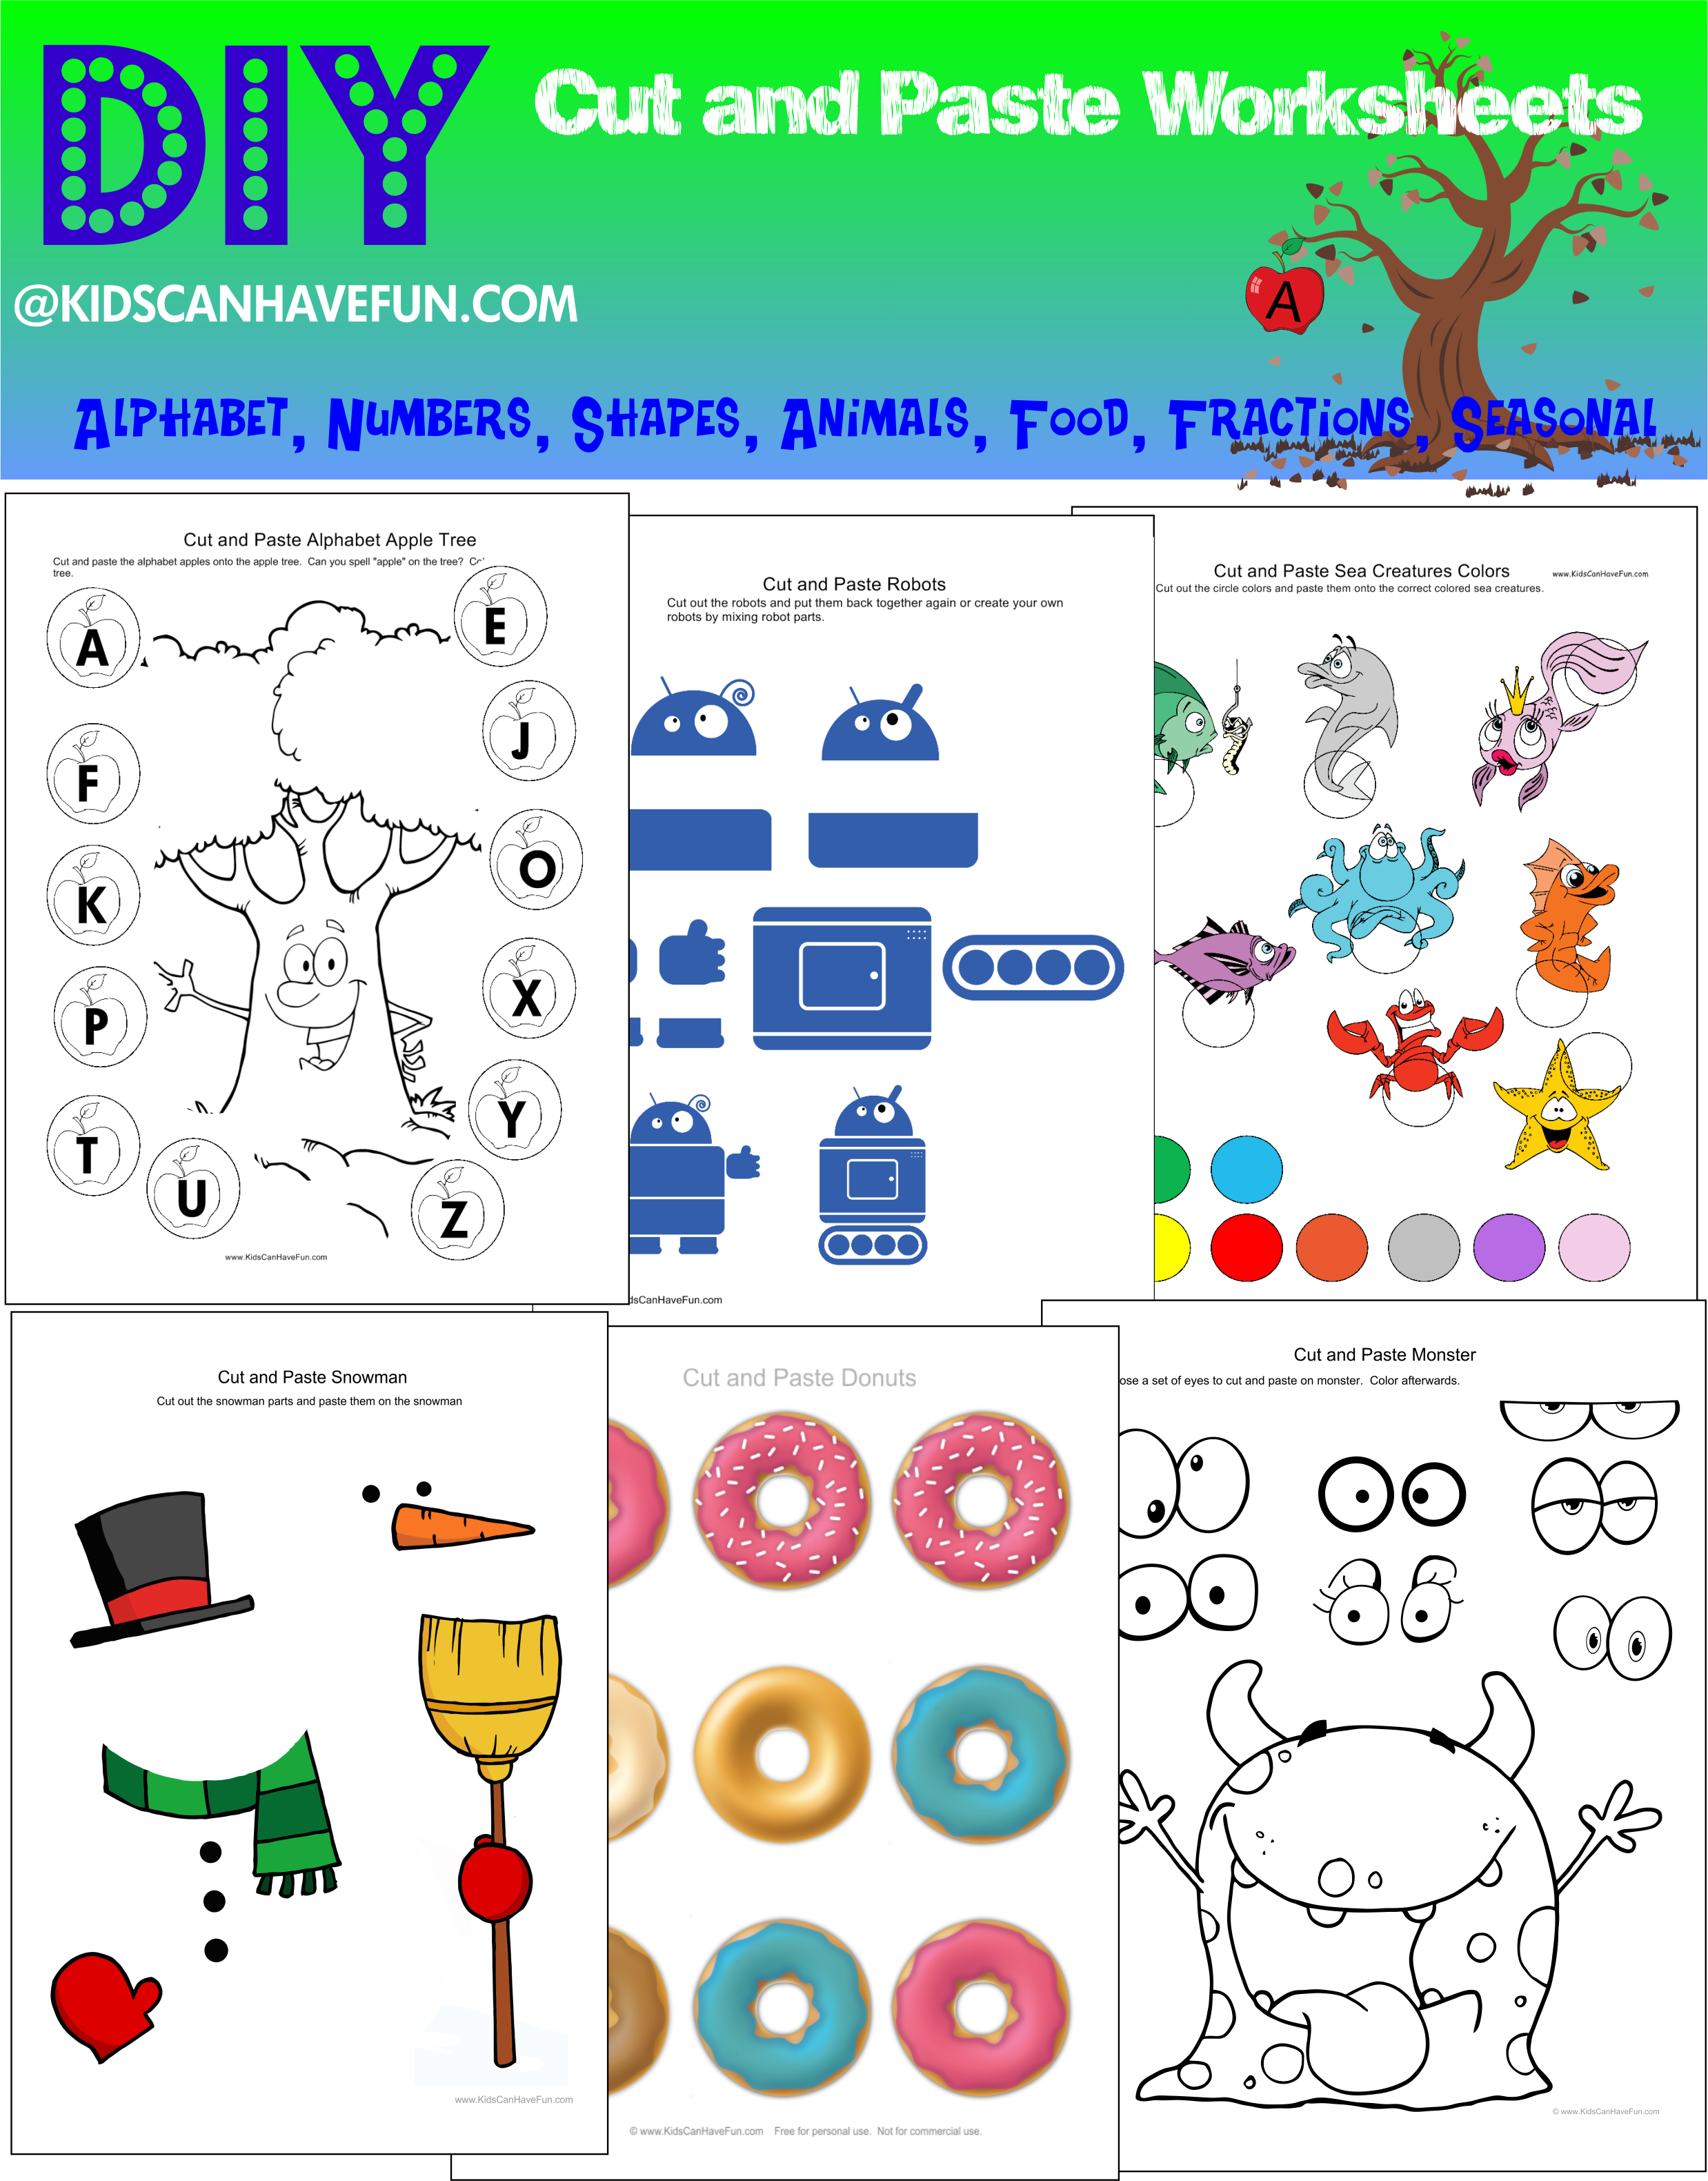 diy cut and paste worksheets for kids http www kidscanhavefun com